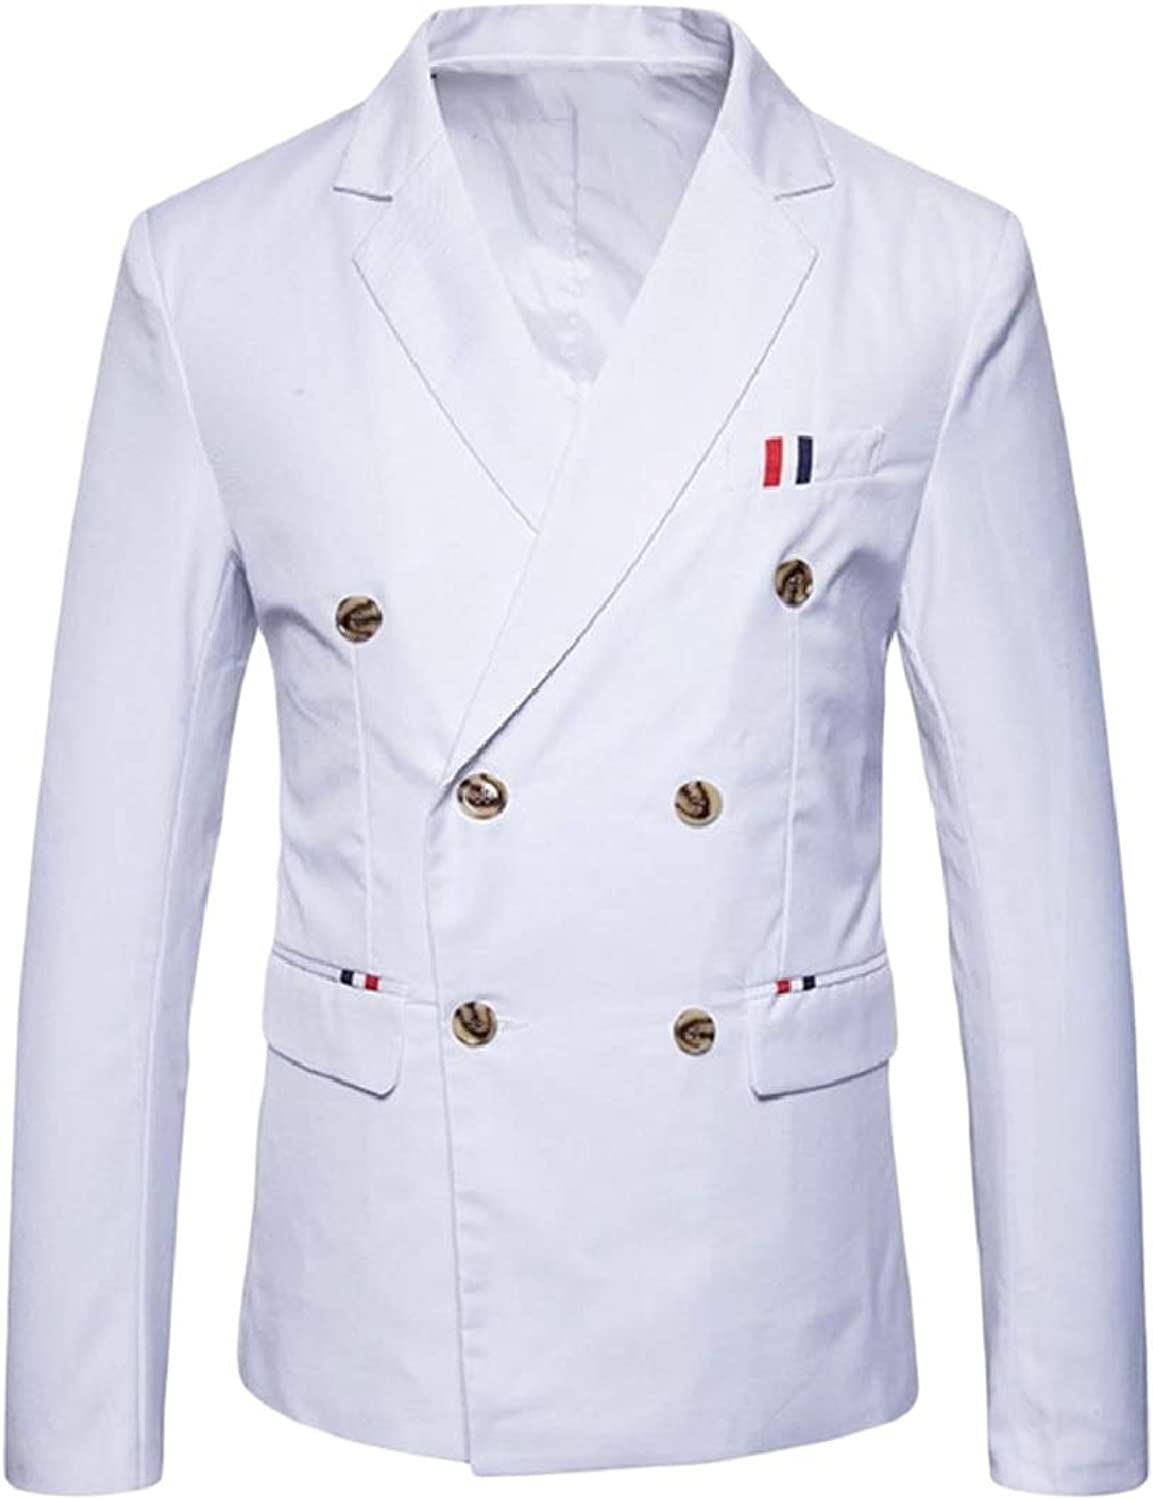 SpaceAngel Mens Double Breasted Notched Collar Simple Plus-Size Blazer Jacket